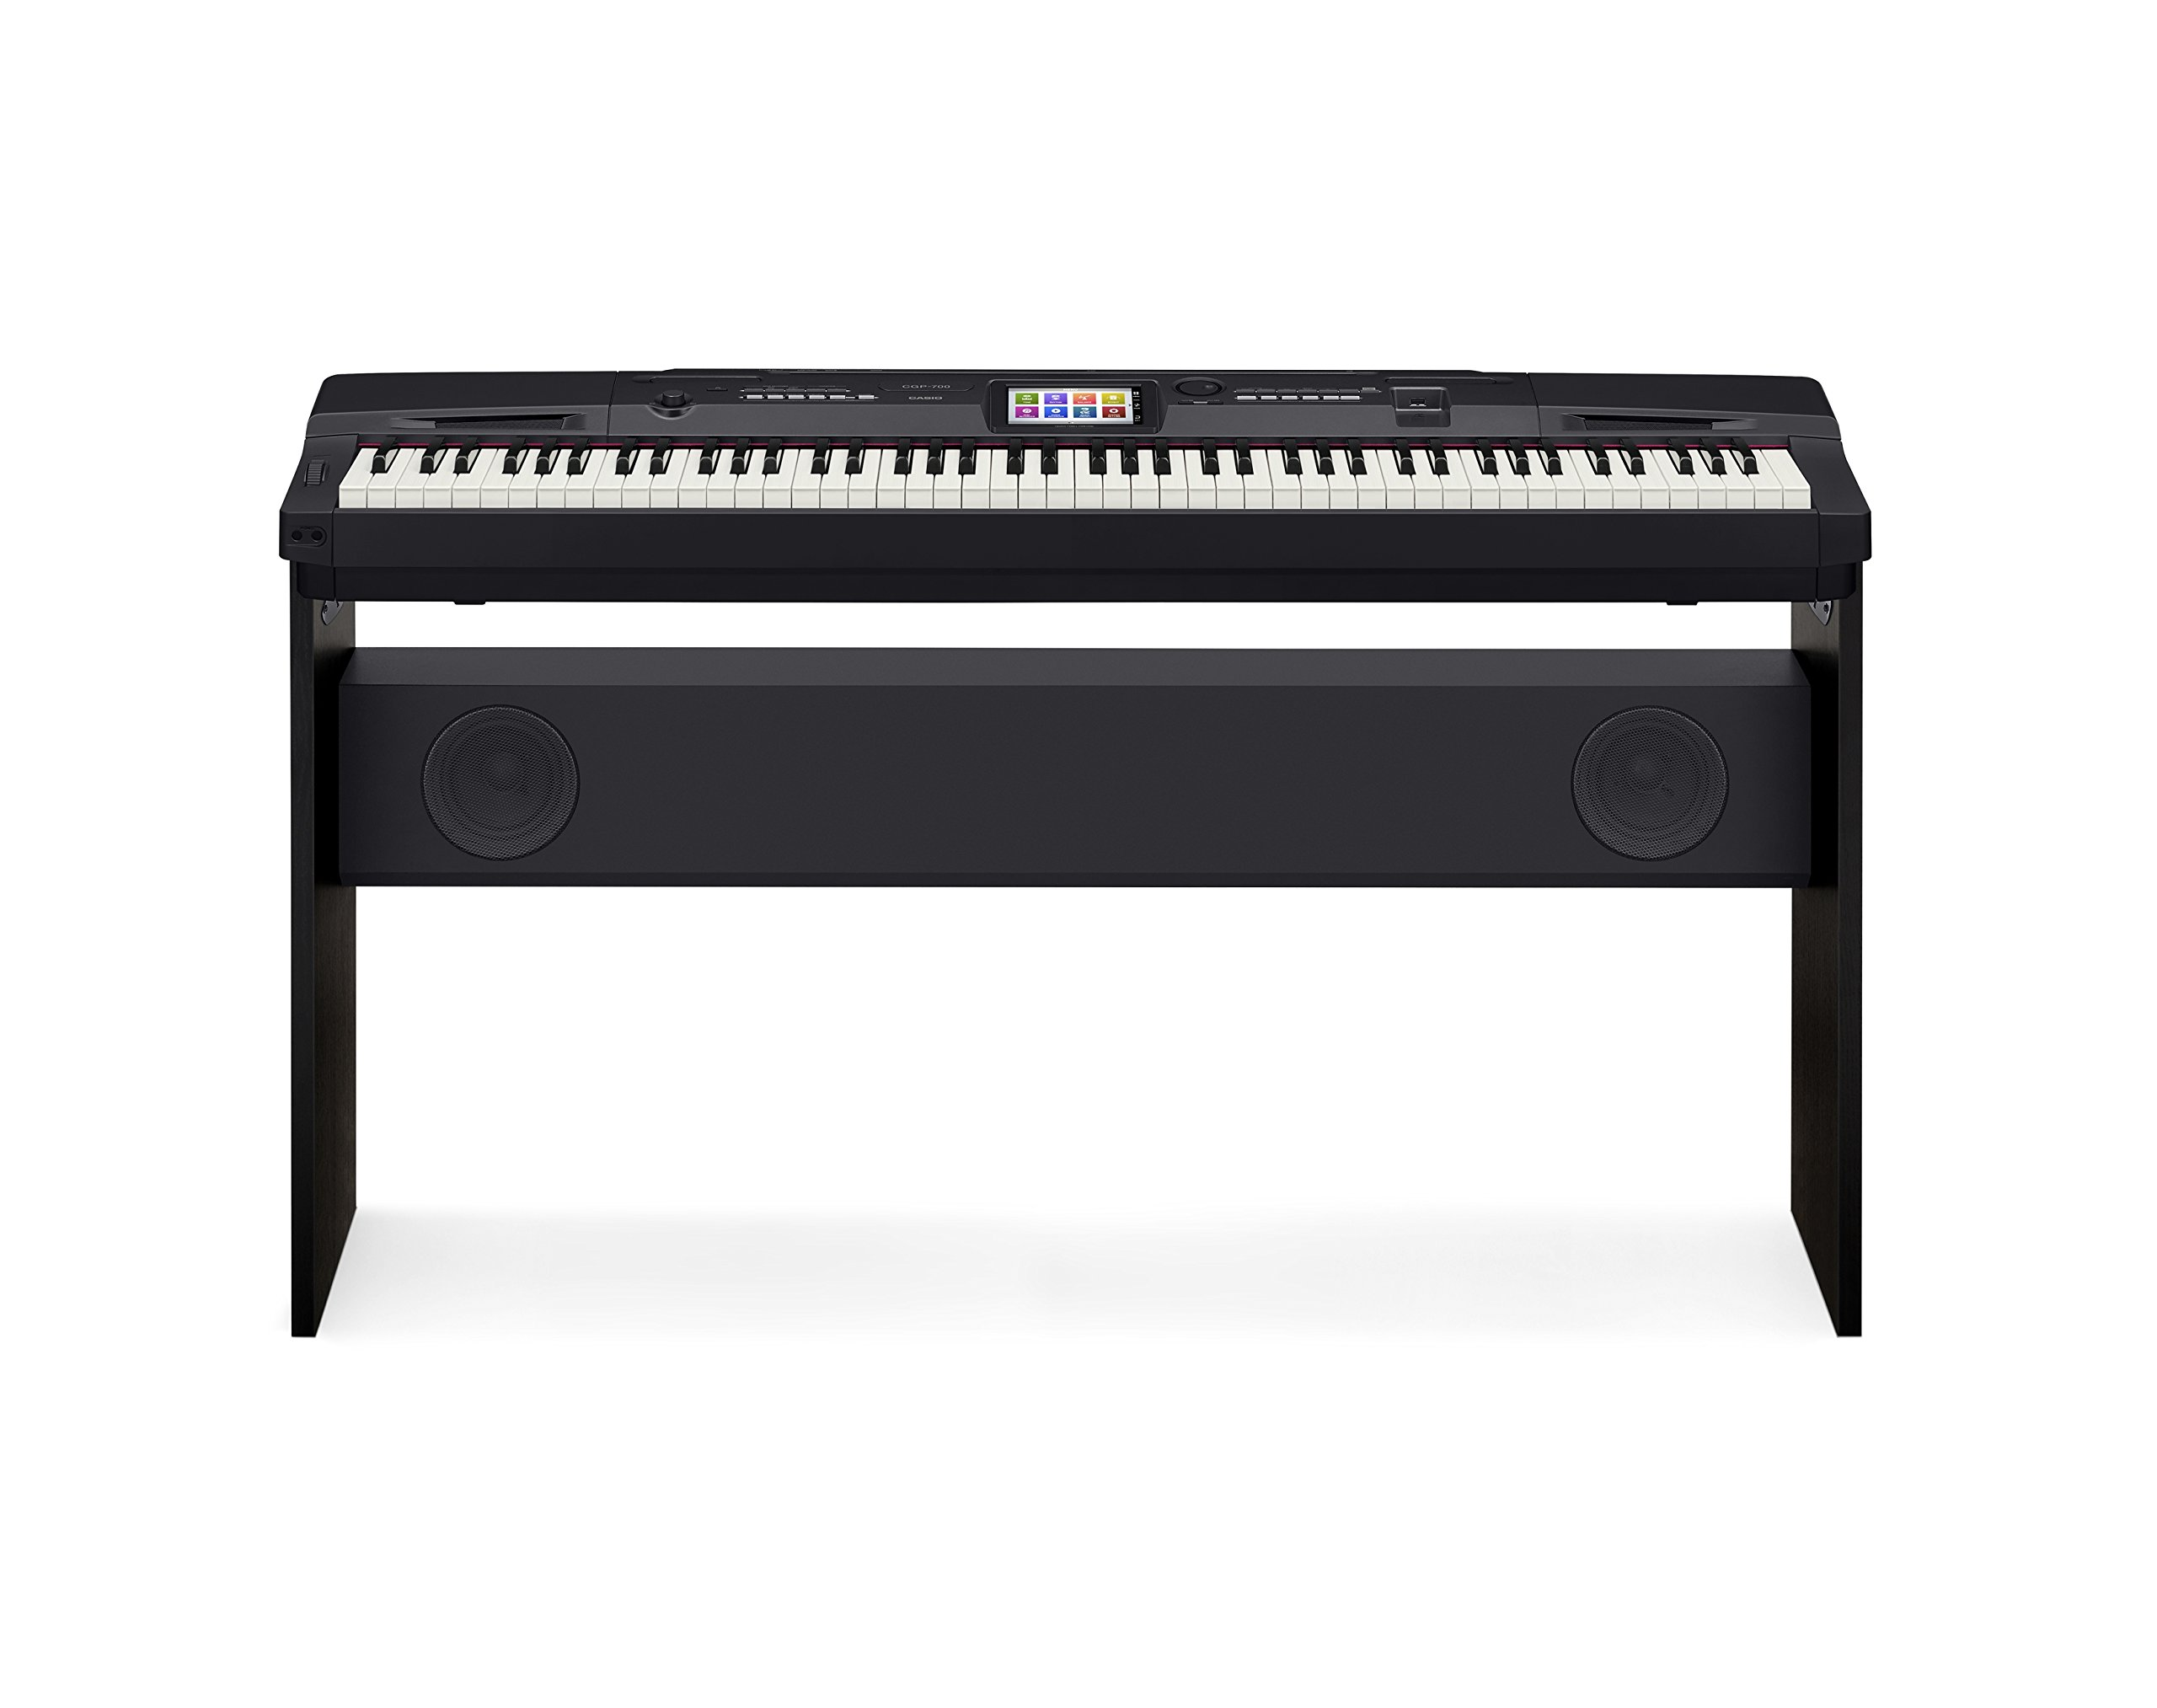 Casio CGP-700BK 88-Key Compact Grand Digital Piano Bundle with Furniture-Style Bench, Dust Cover, Instructional DVD, Instructional Book, Sustain Pedal, and Polishing Cloth - Black by Casio (Image #2)